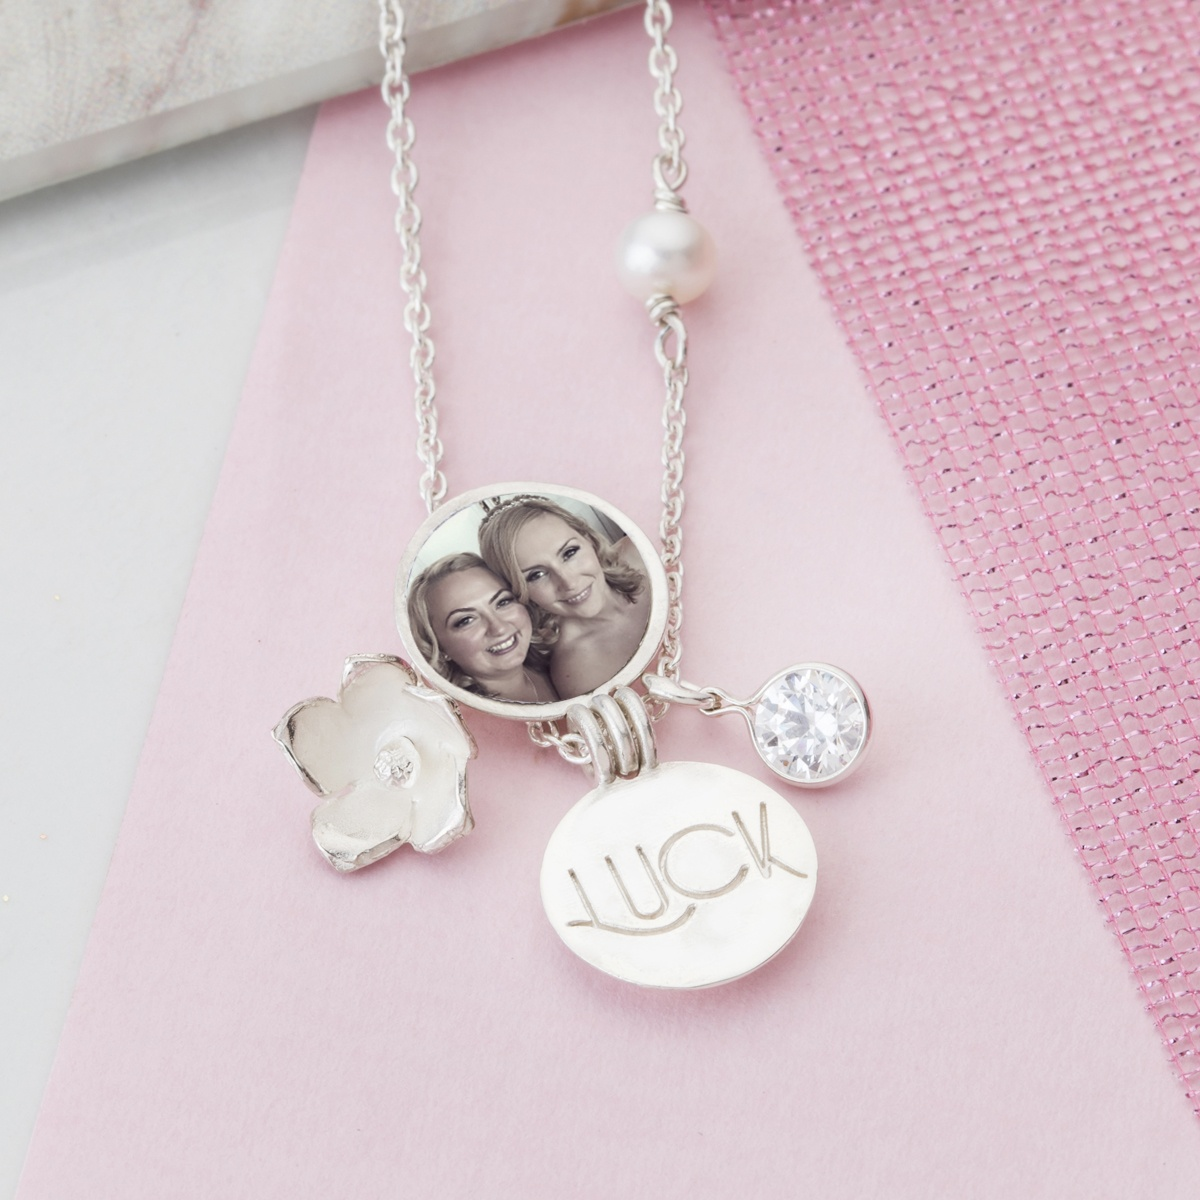 Handmade good luck charm locket necklace a thoughtful gift for women good luck charm necklace wishes of luck and happiness to the wearer aloadofball Gallery